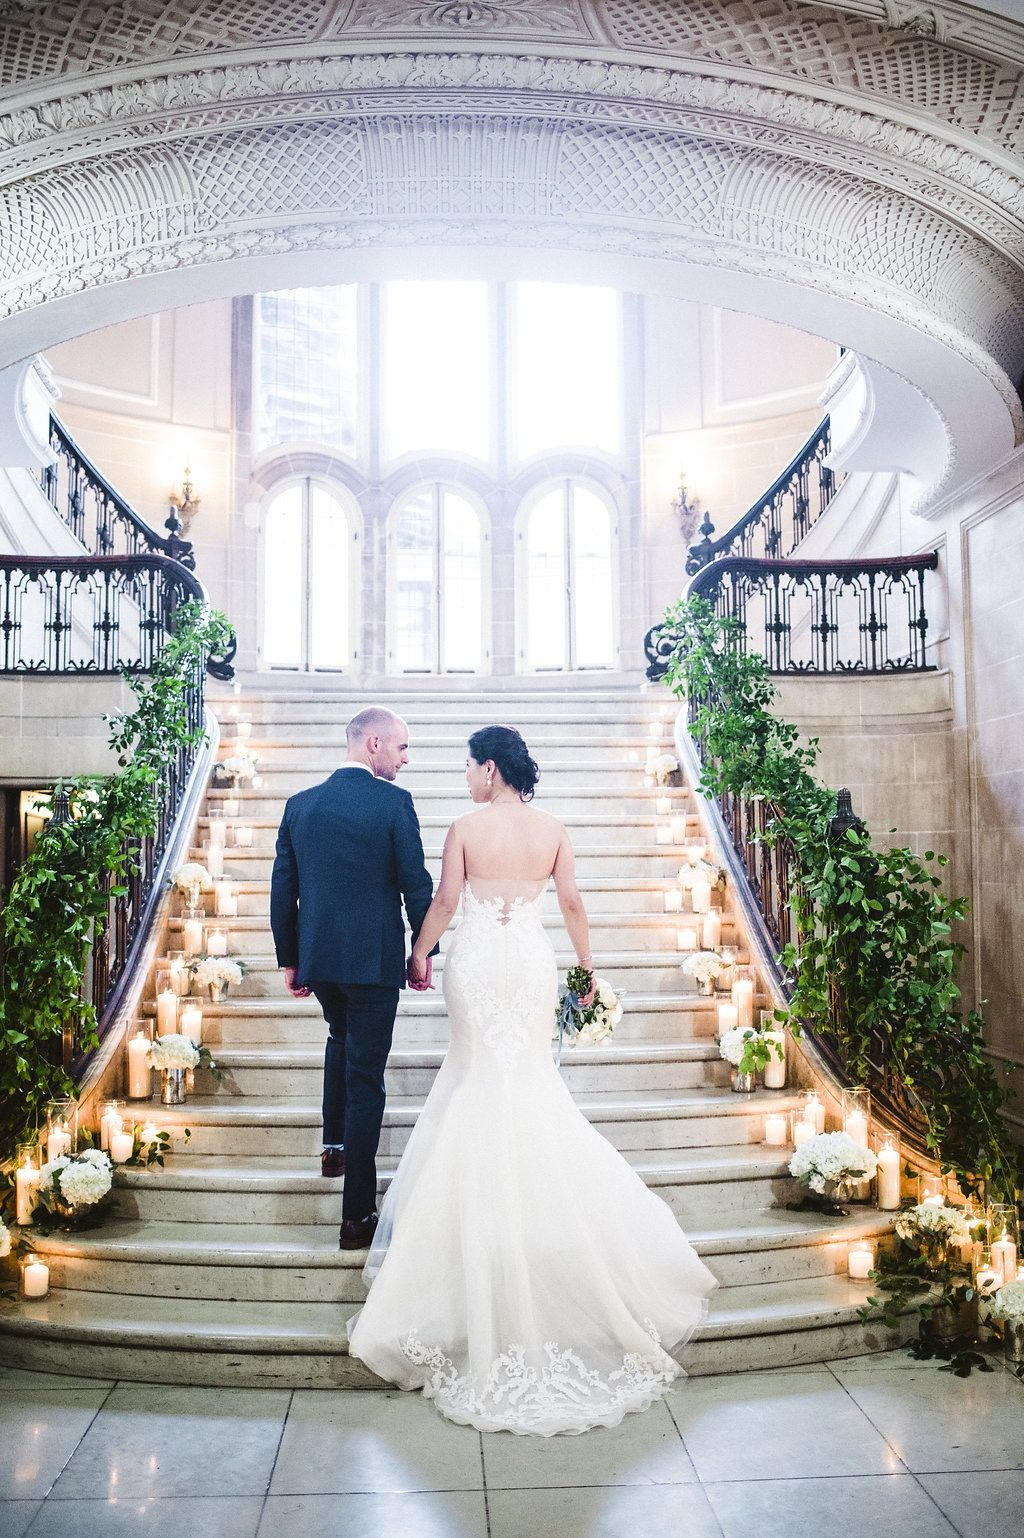 Wedding decorations house  Armour House Wedding  Installations  Pinterest  Forest academy